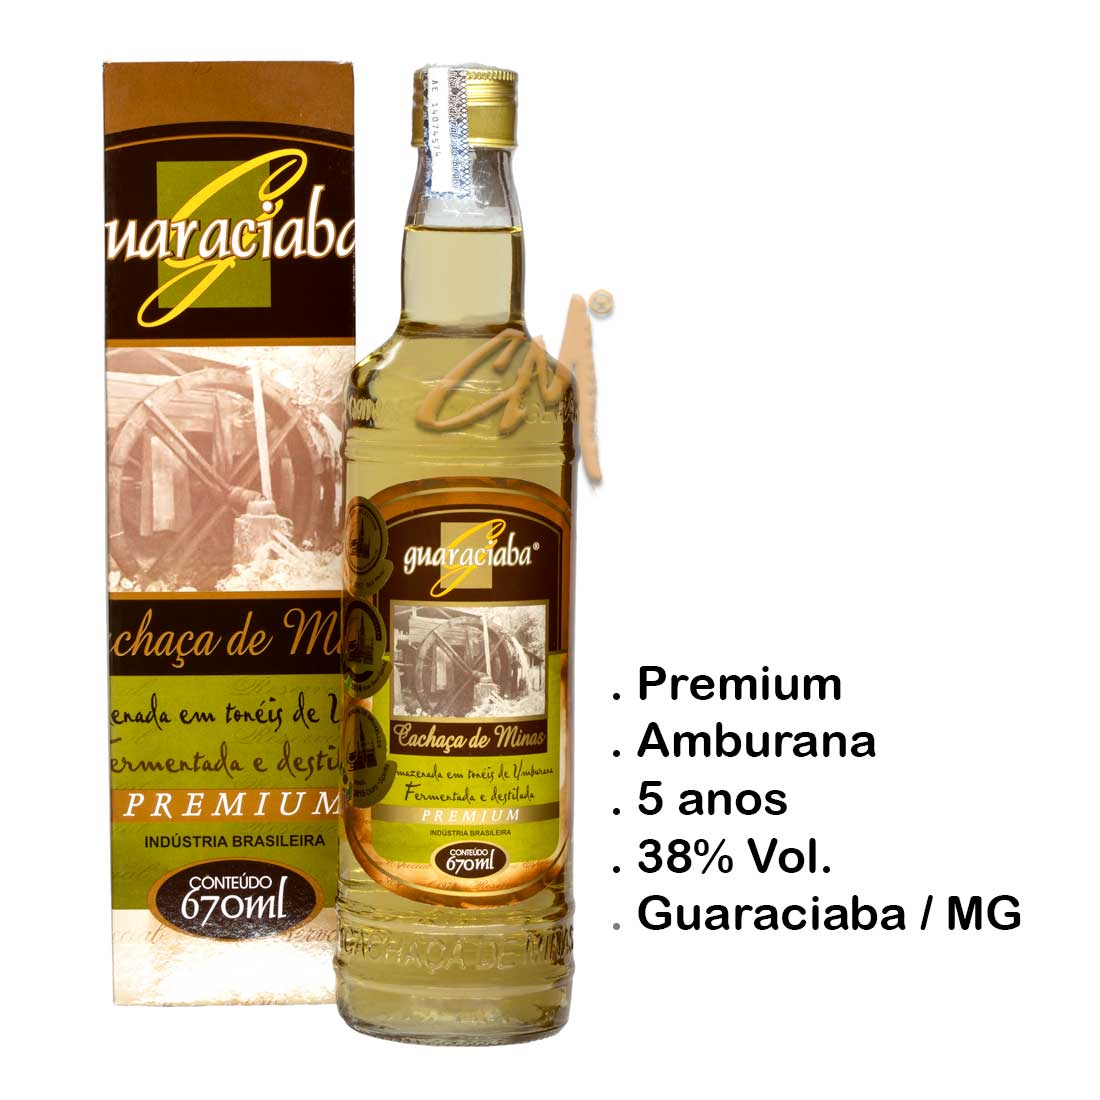 Cachaça Guaraciaba Premium 670 ml (Guaraciaba - MG)